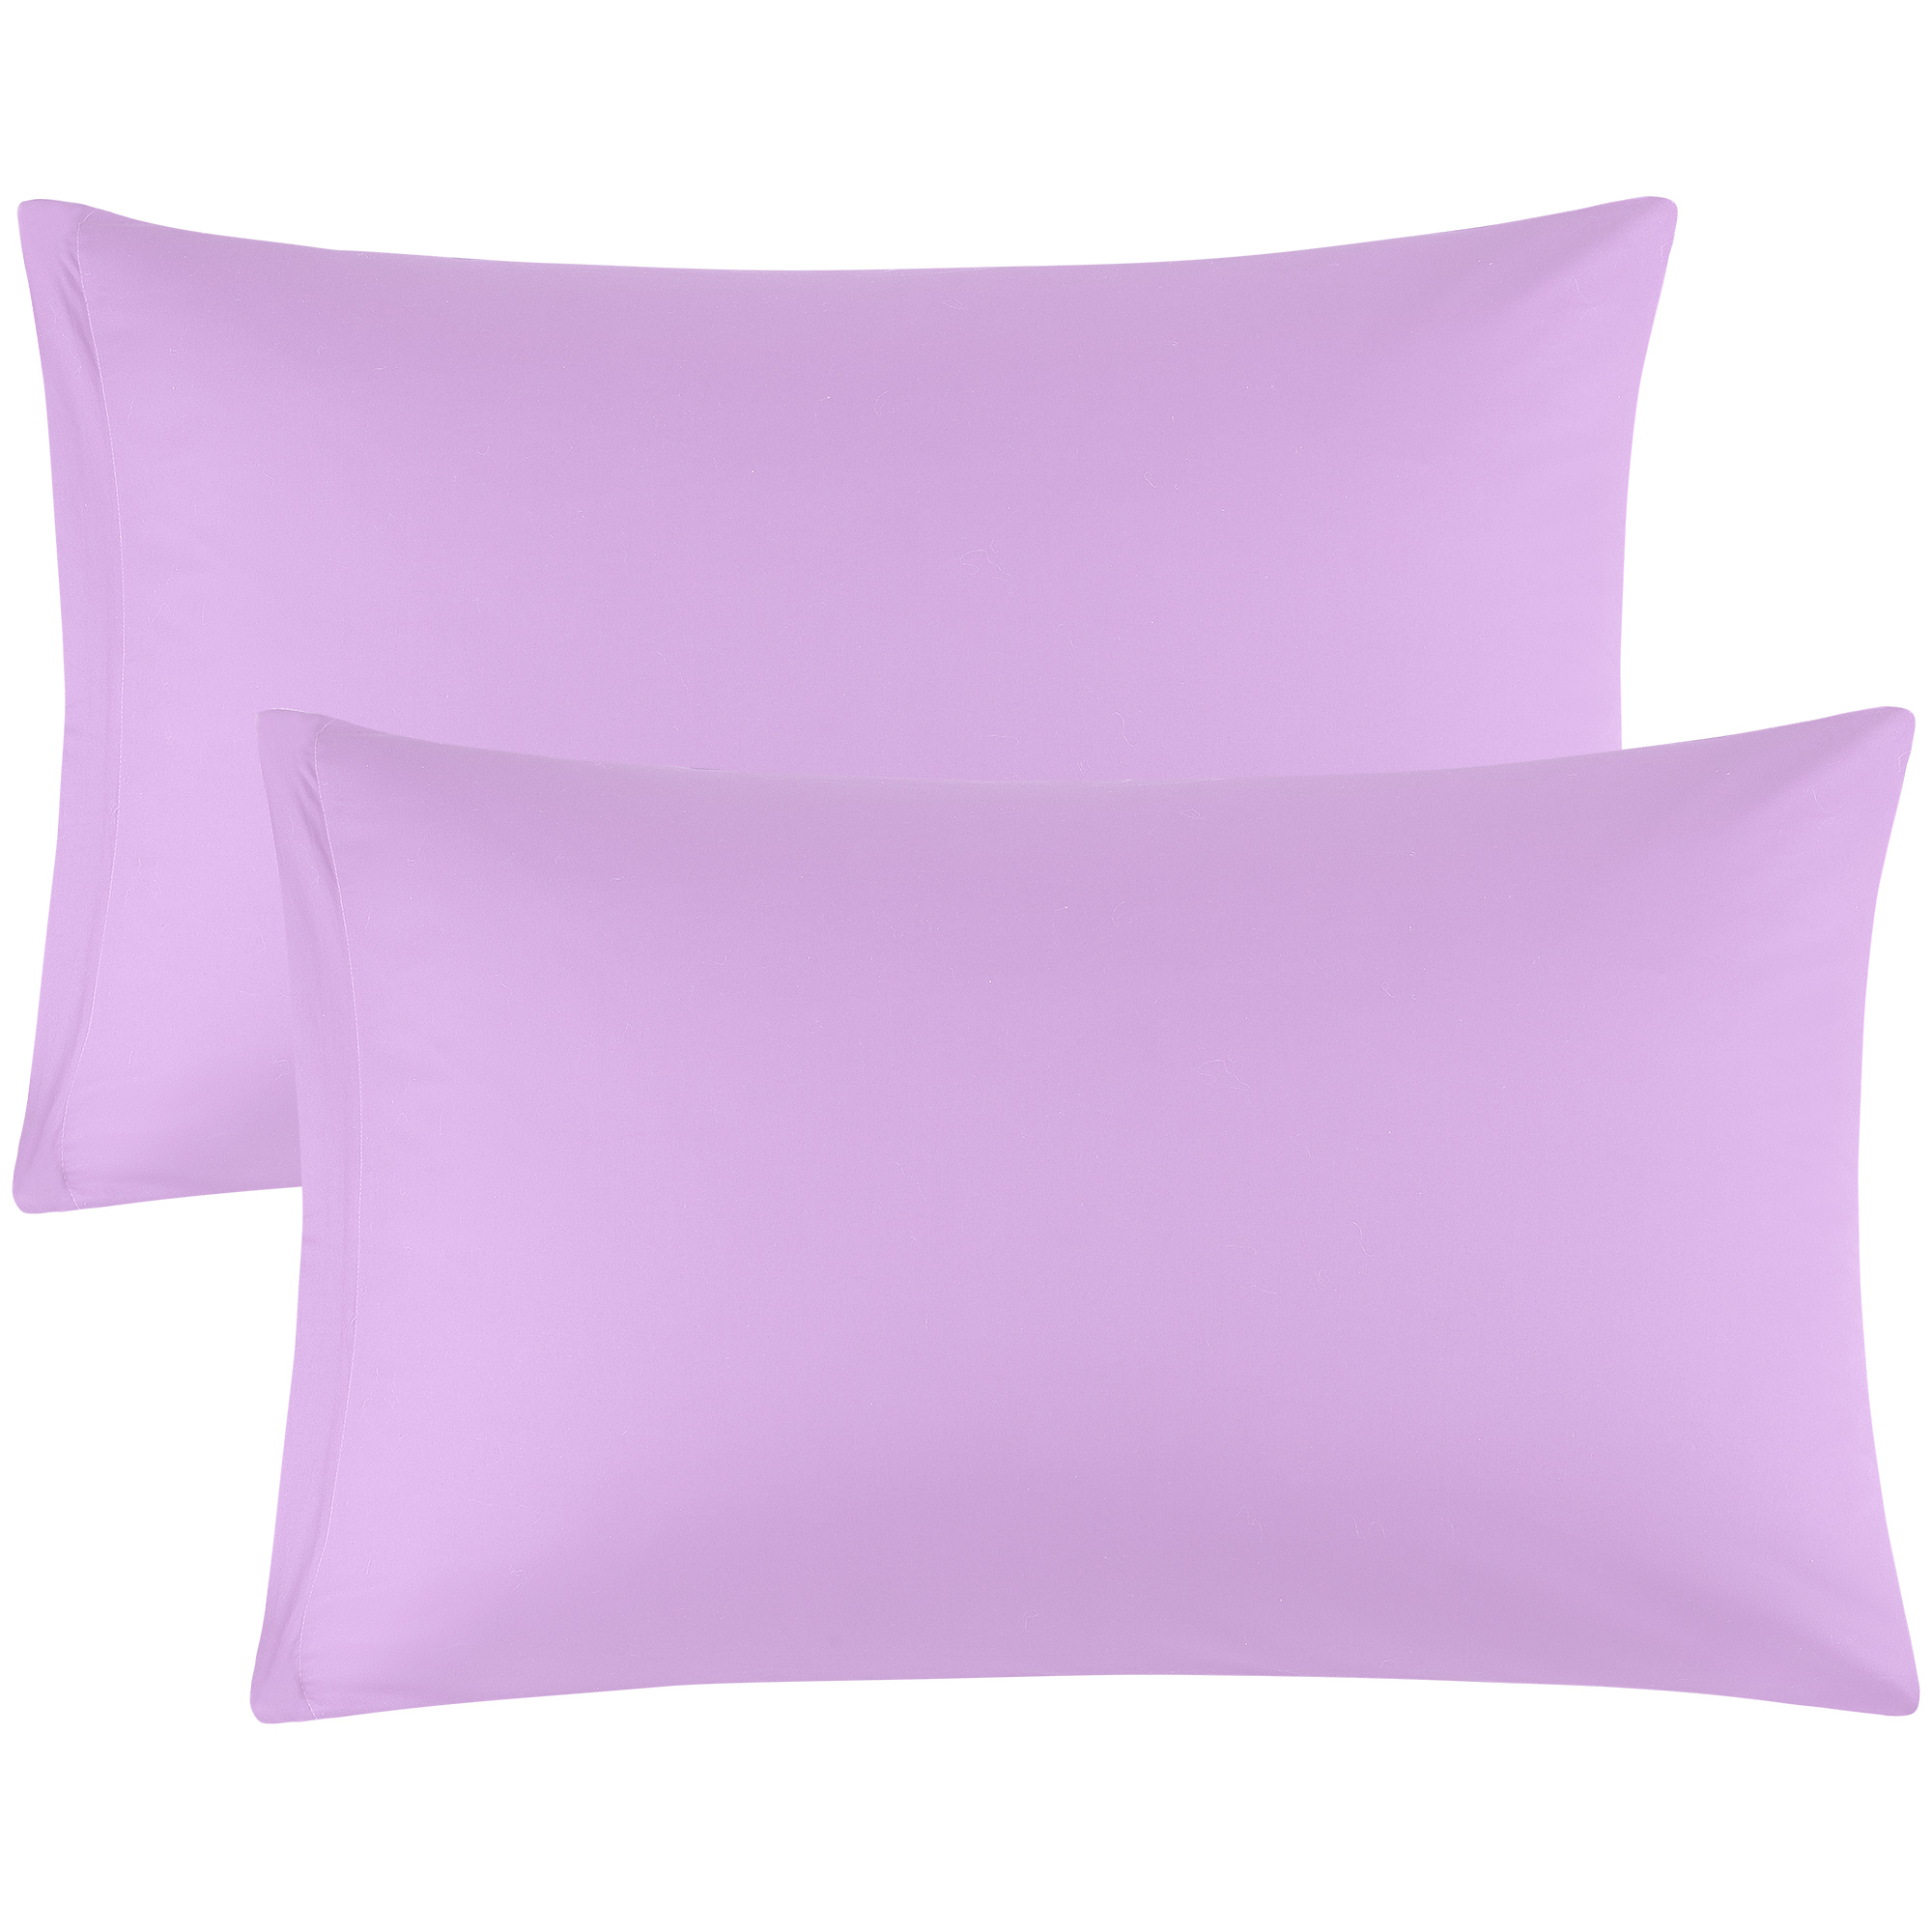 Zippered Pillowcases Covers Egyptian Cotton 2-Pack (20 x 30 Inch, Light Purple)